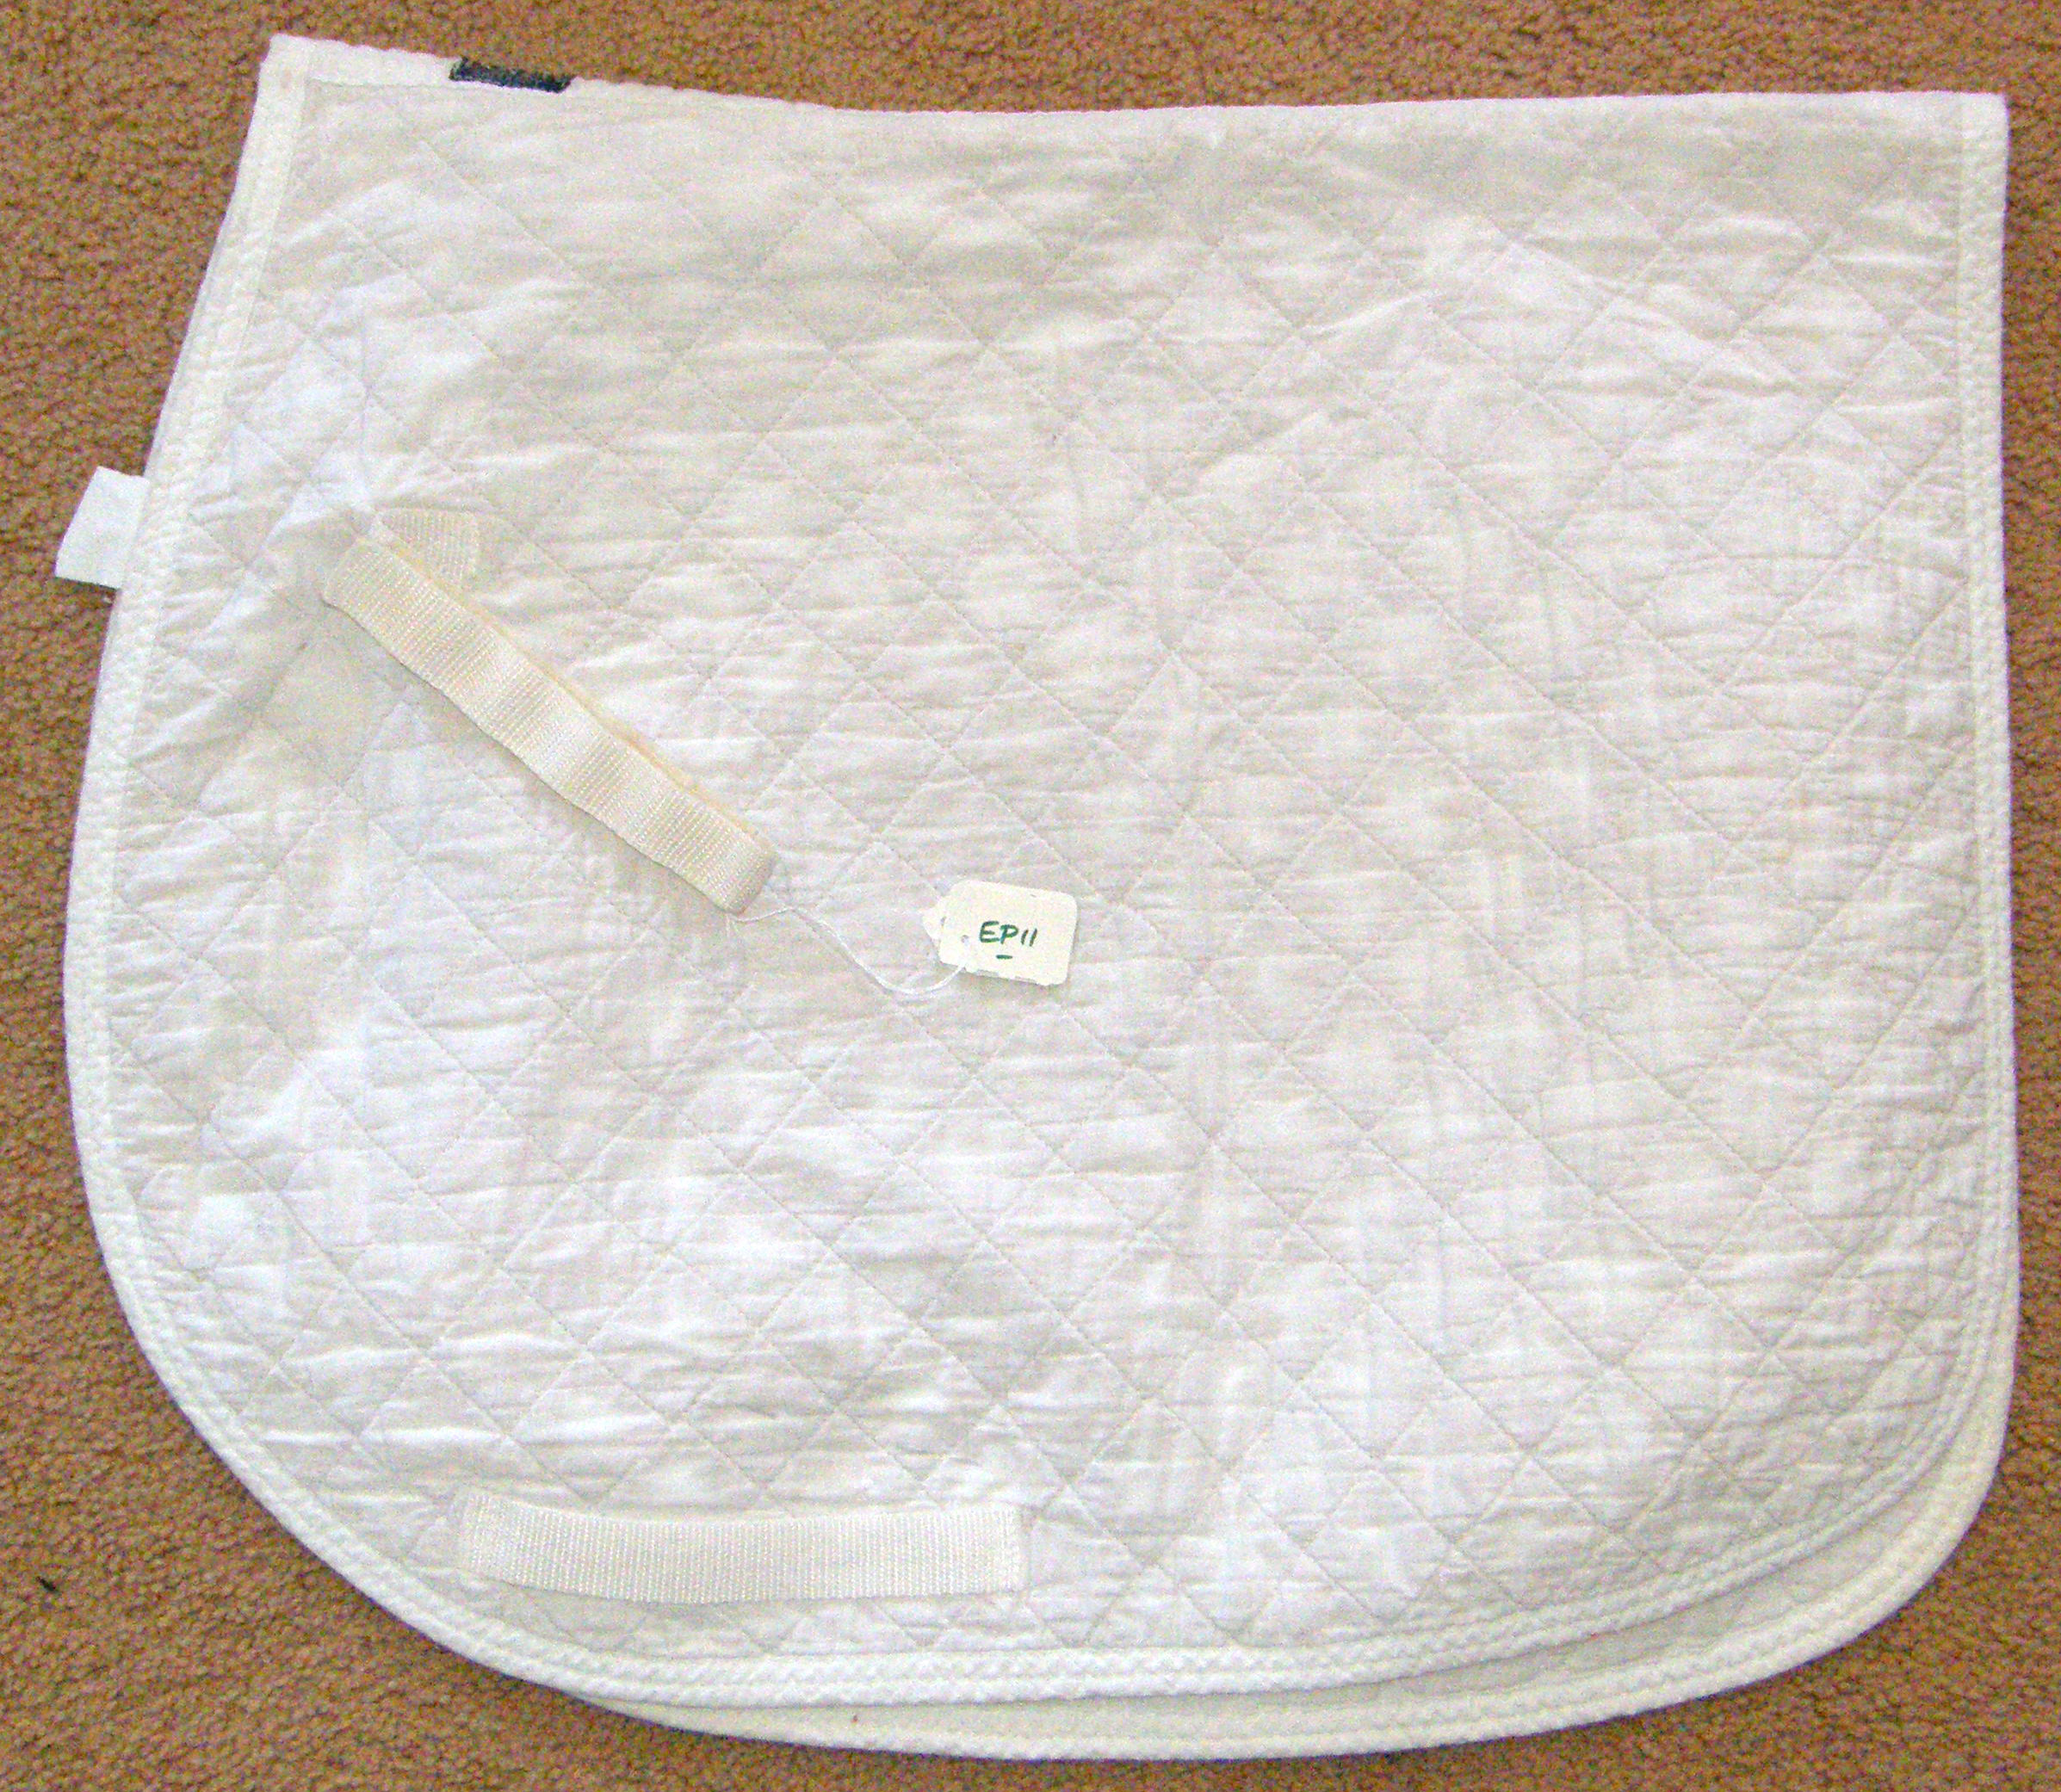 Millers Roma Lite Thin Quilted Dressage Pad Quilted Cotton Event Pad English Saddle Pad White